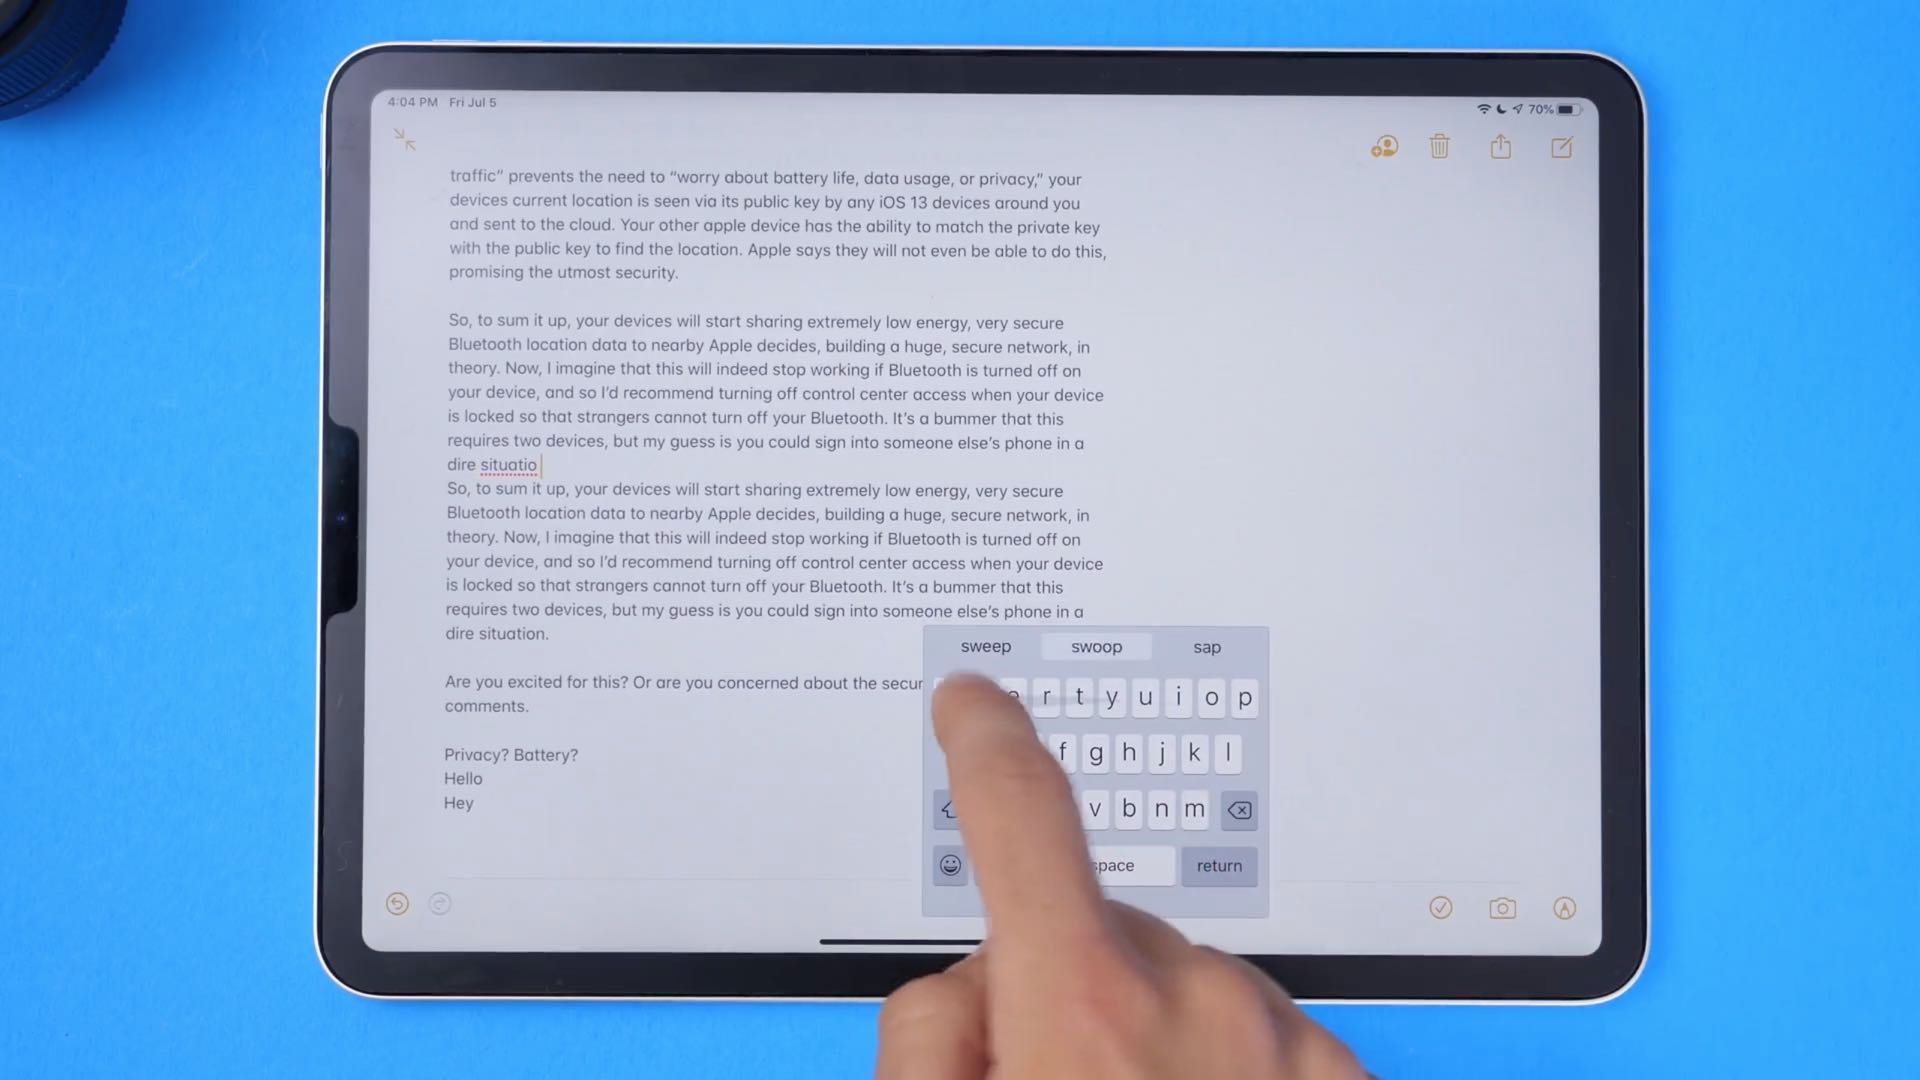 iPad swipe keyboard - QuickPath